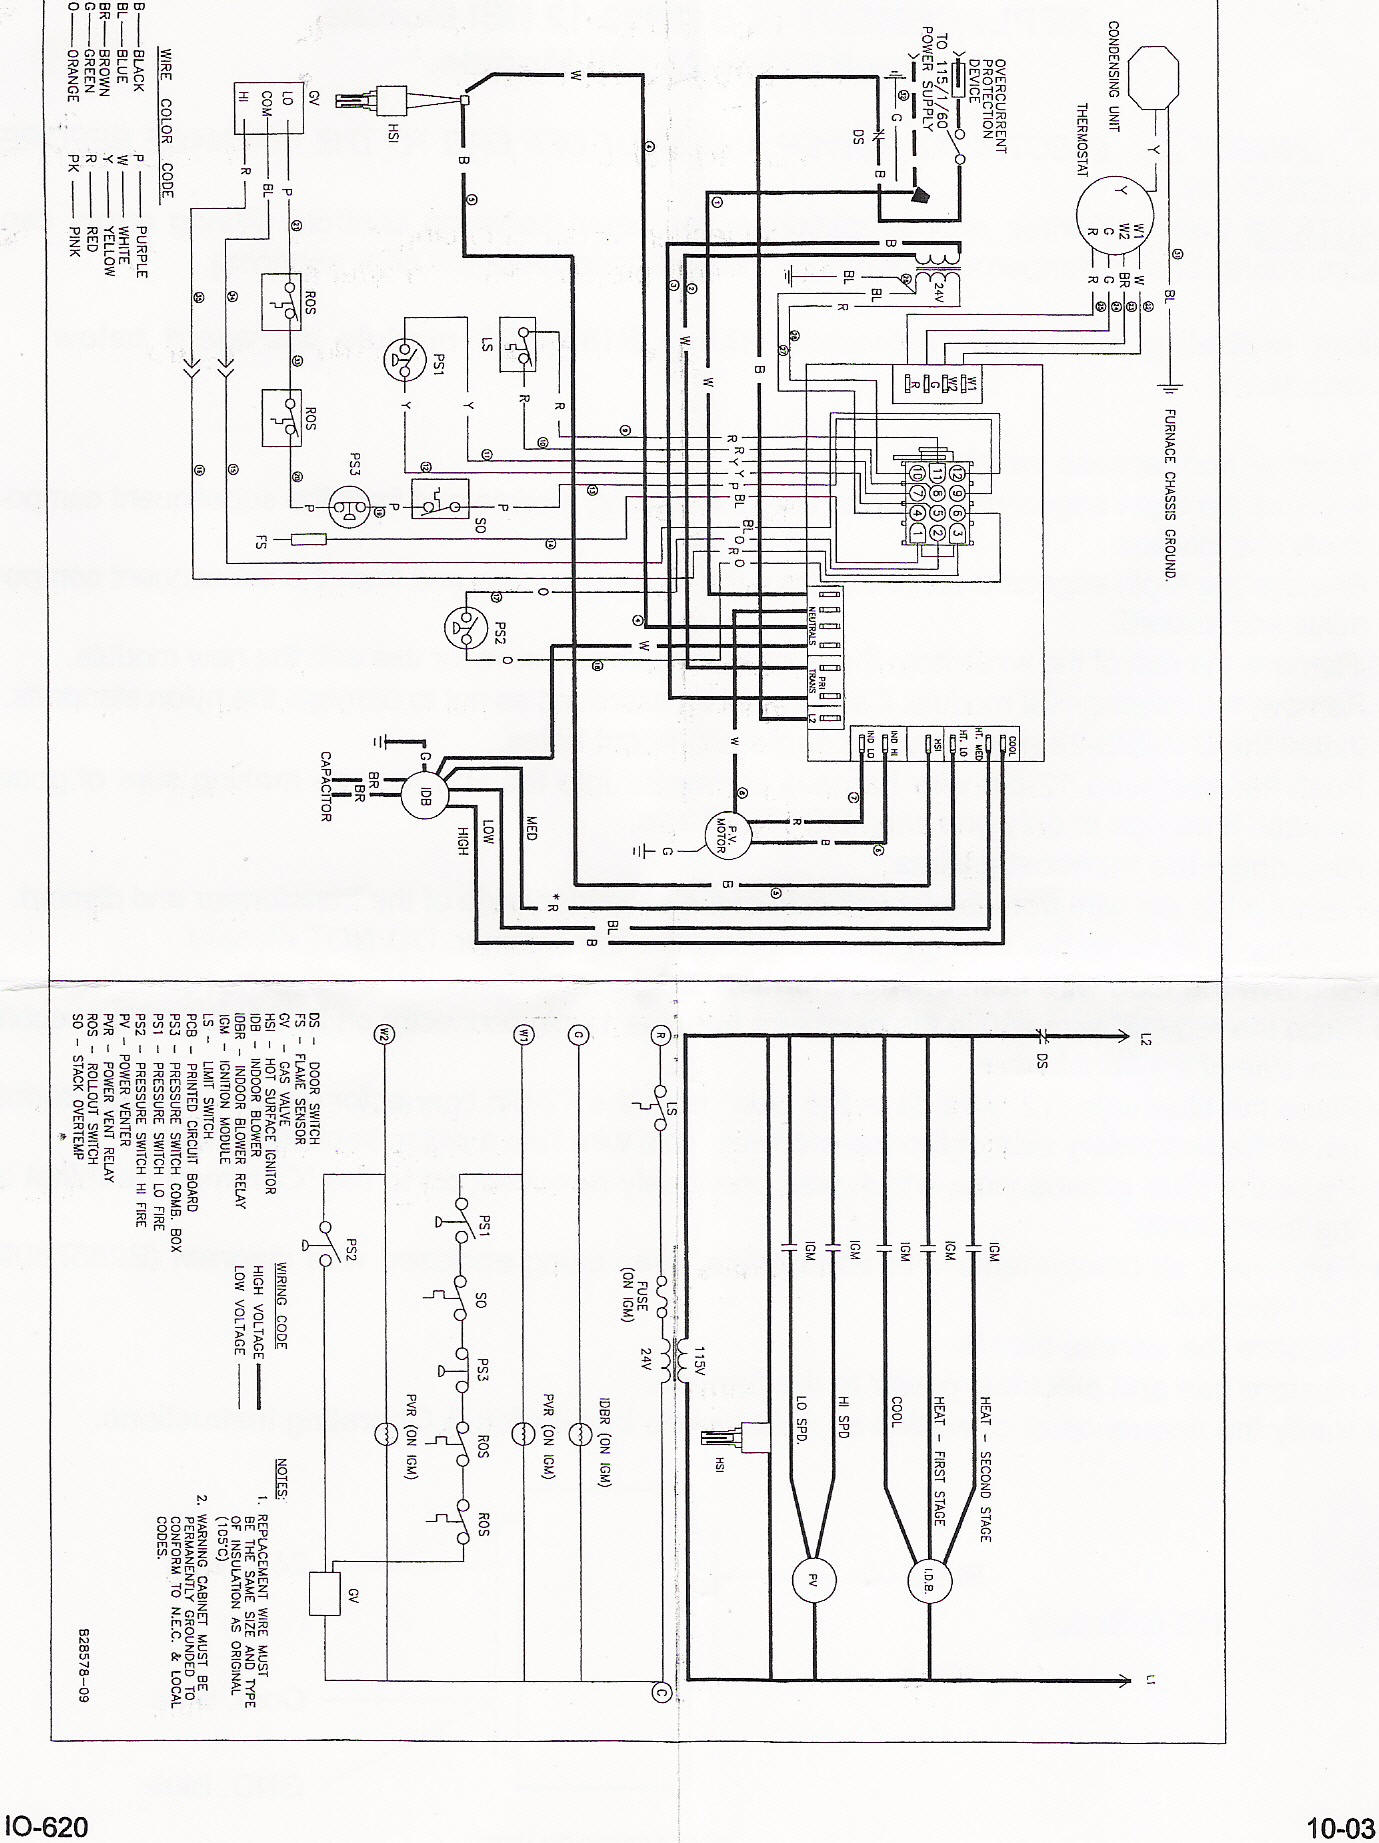 goodma2 instr goodman control board b18099 23 instructions goodman ac wiring diagram at gsmx.co